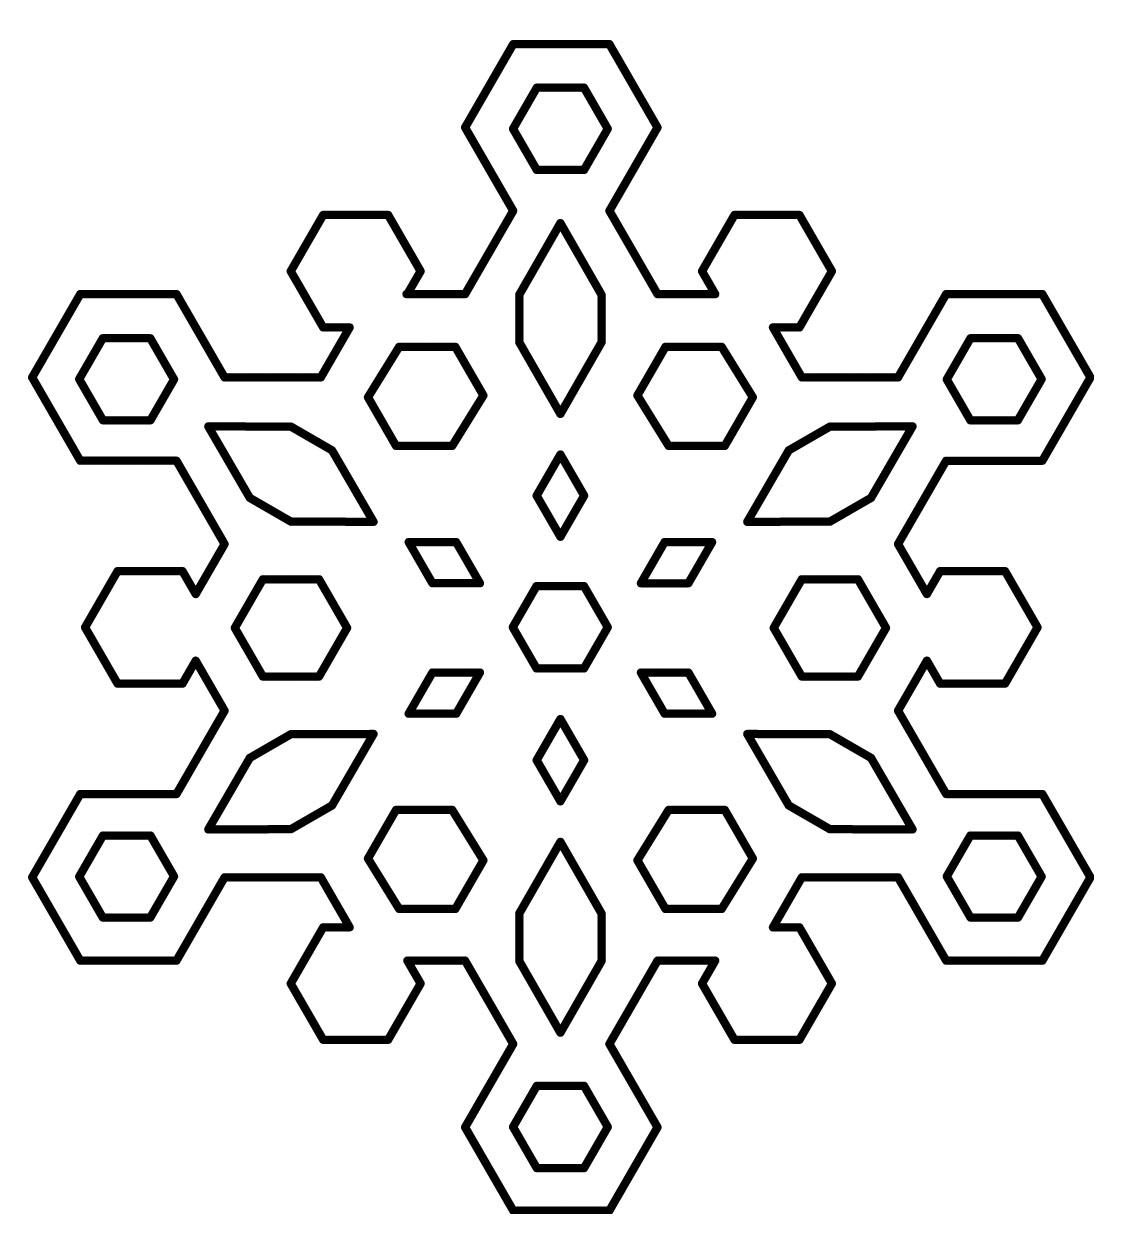 61 images of Snowflakes Images Free . You can use these free cliparts ...